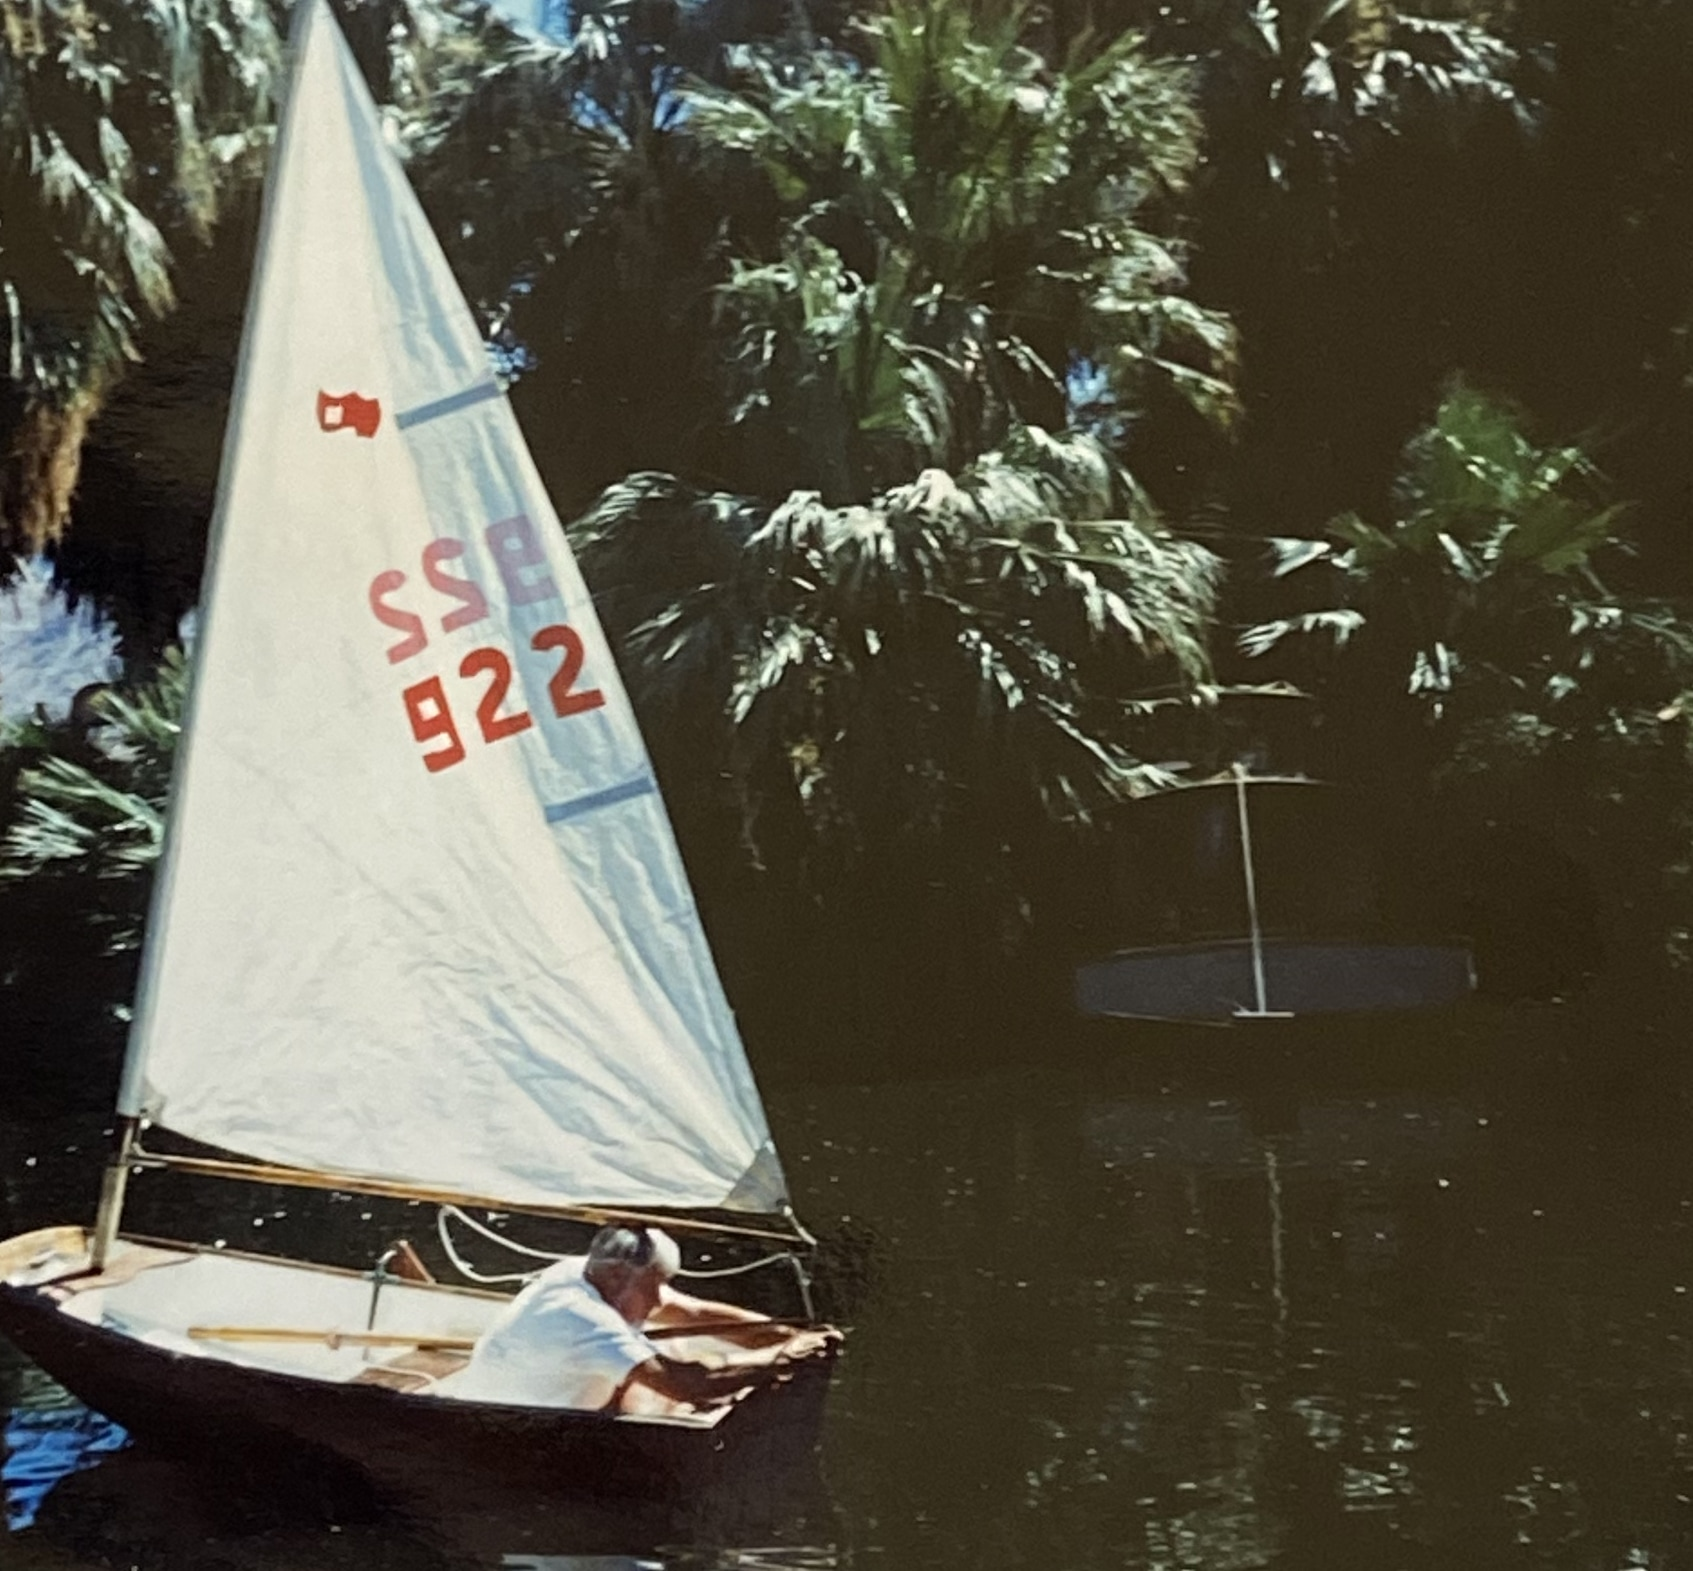 Ron Grunt in his sailboat on the Oasis of Mara